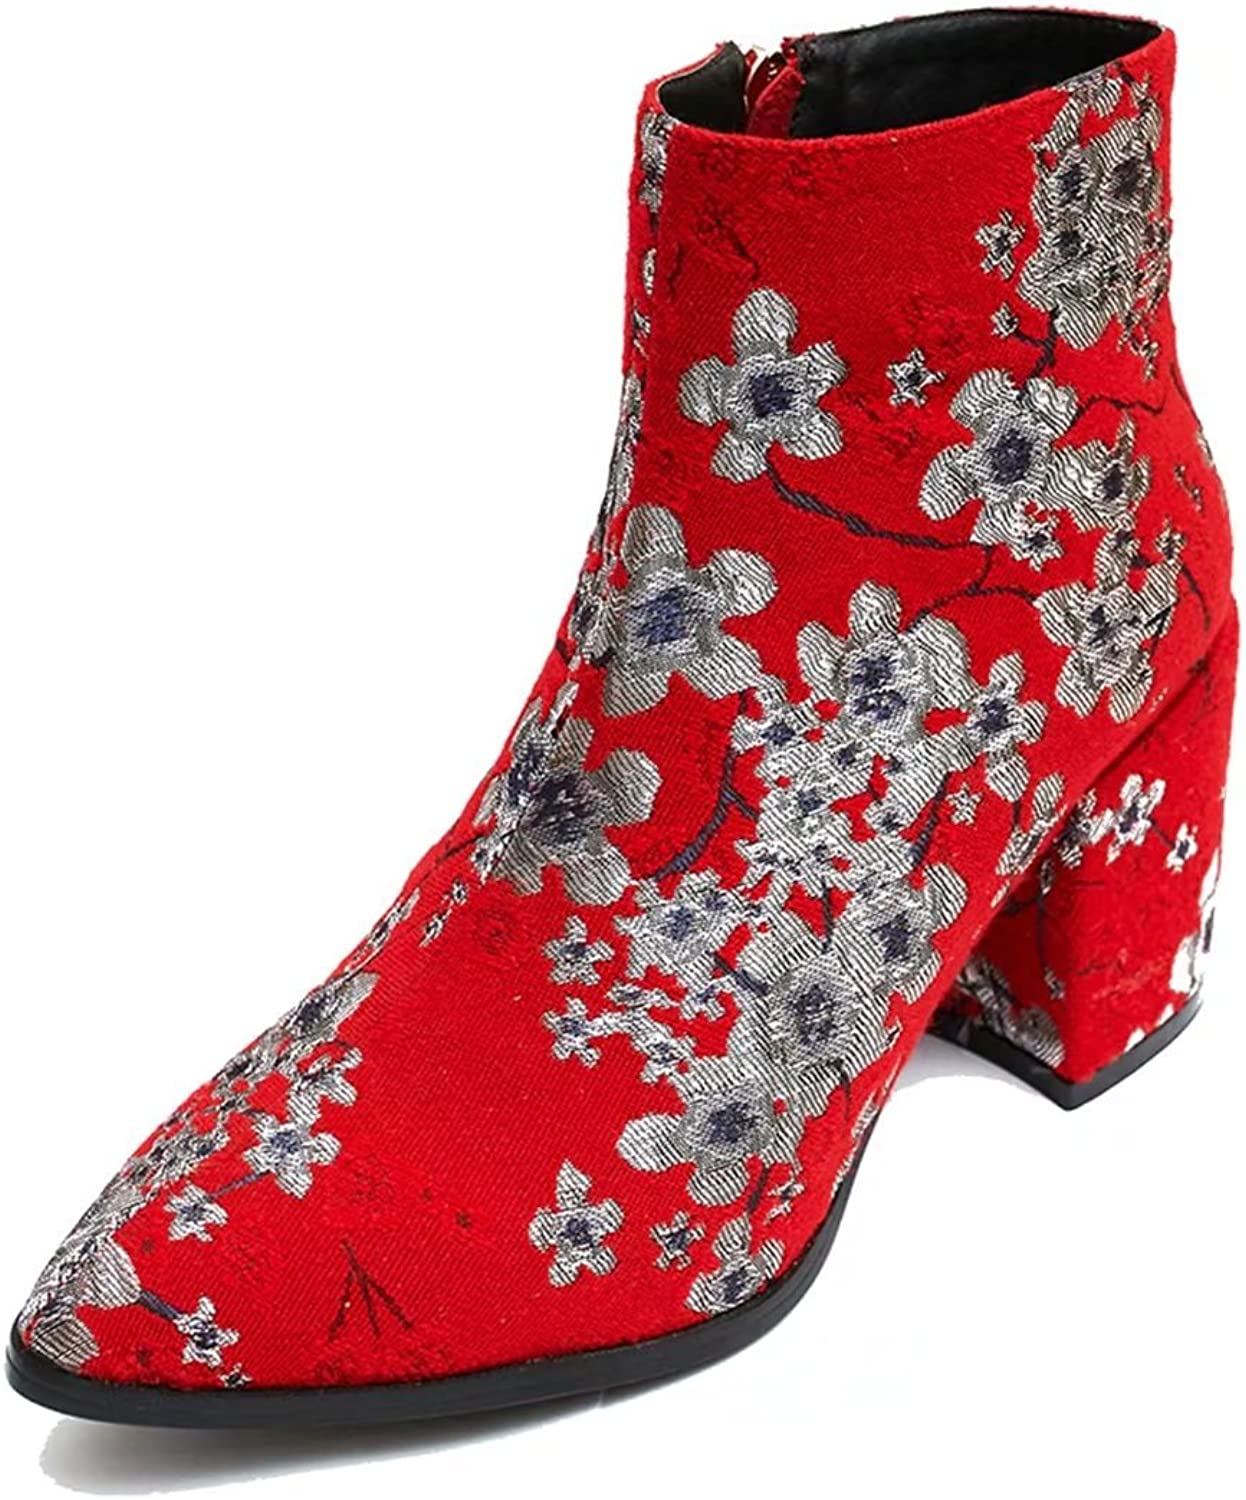 KingRover Women's Sexy Pointed Toe Floral Embroidery Chunky Heel Dressy Ankle Boots